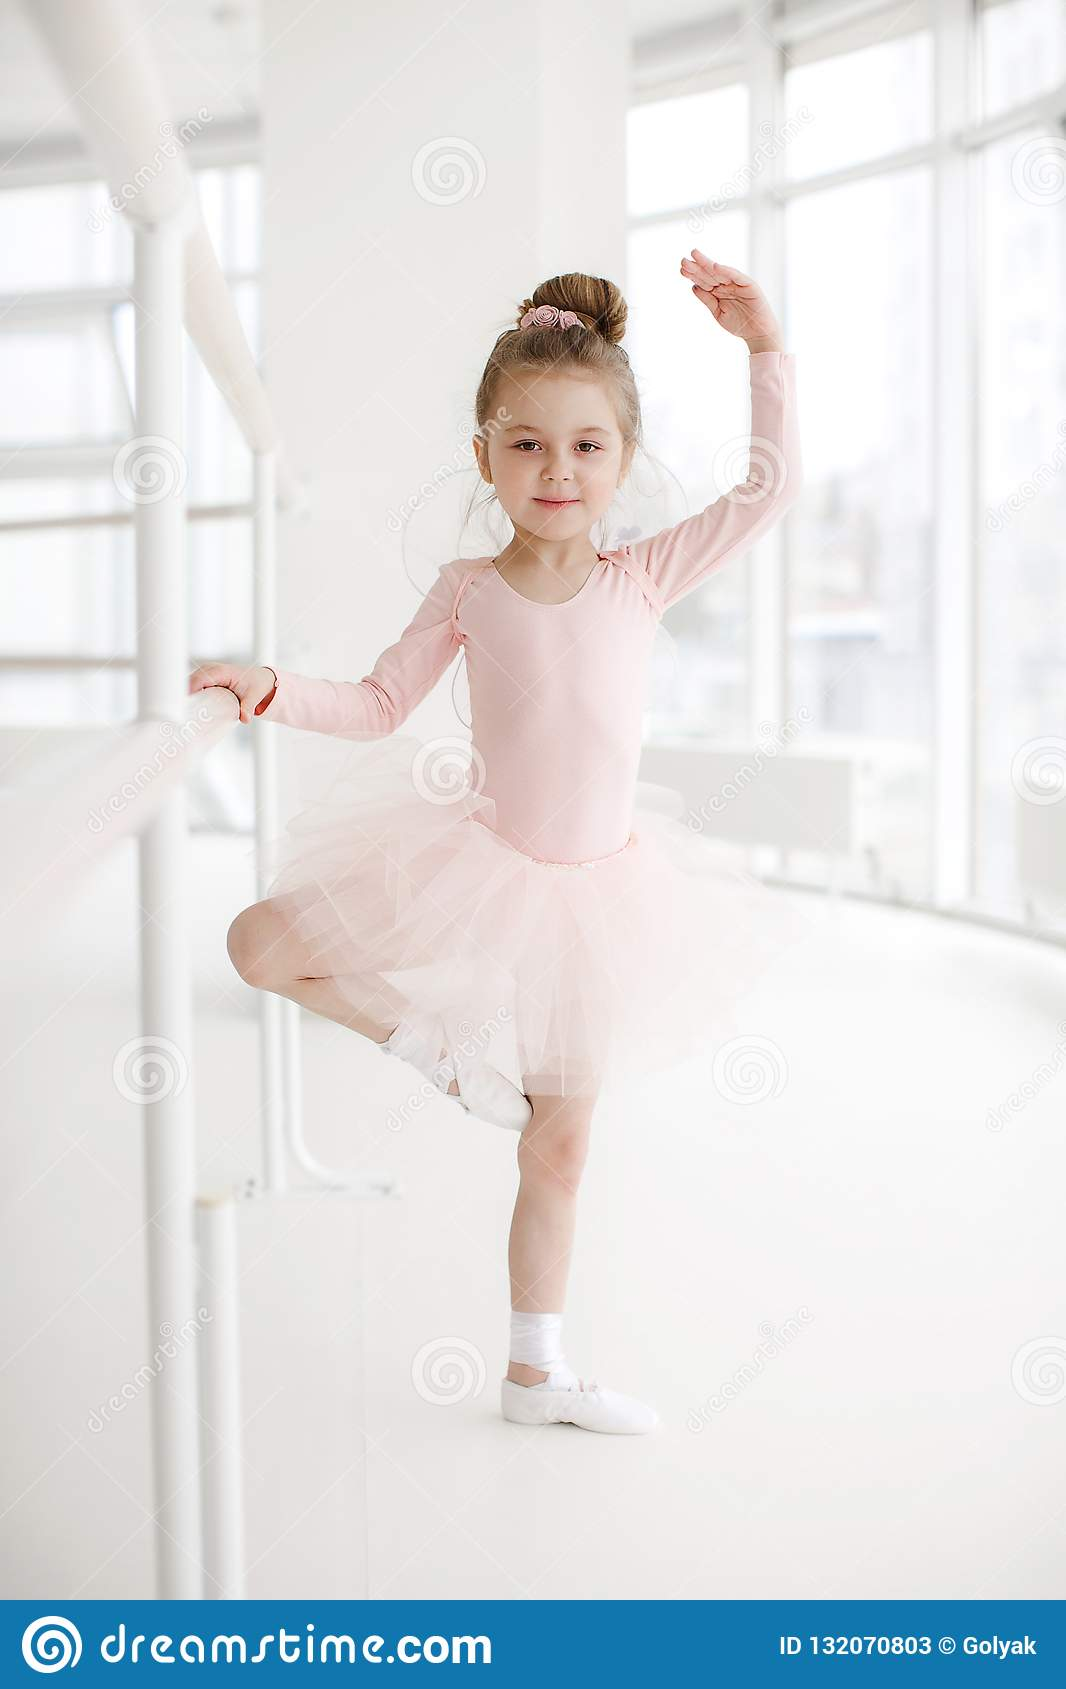 78a28e124 Little Cute Girl In Class In Ballet Studio Stock Image - Image of ...